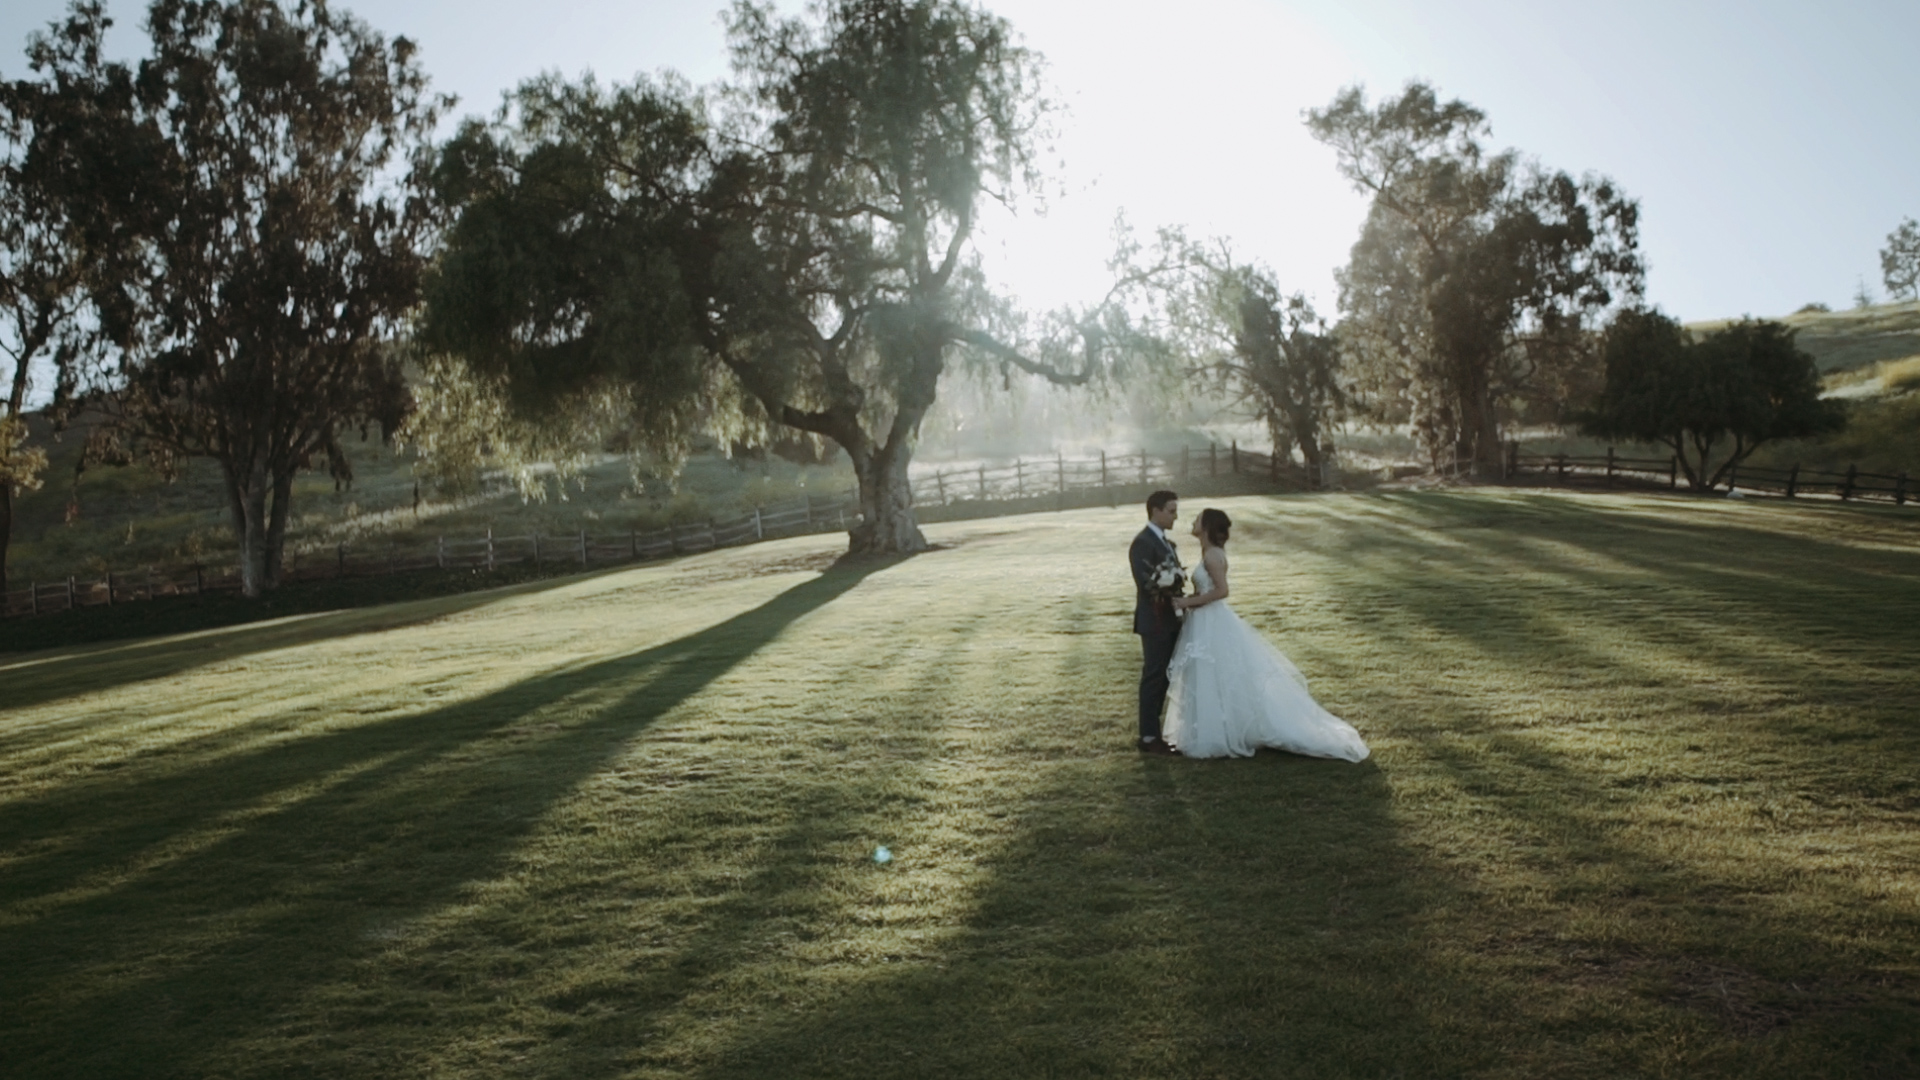 Cassie + Jacob | San Juan Capistrano, California | Saddleback Church